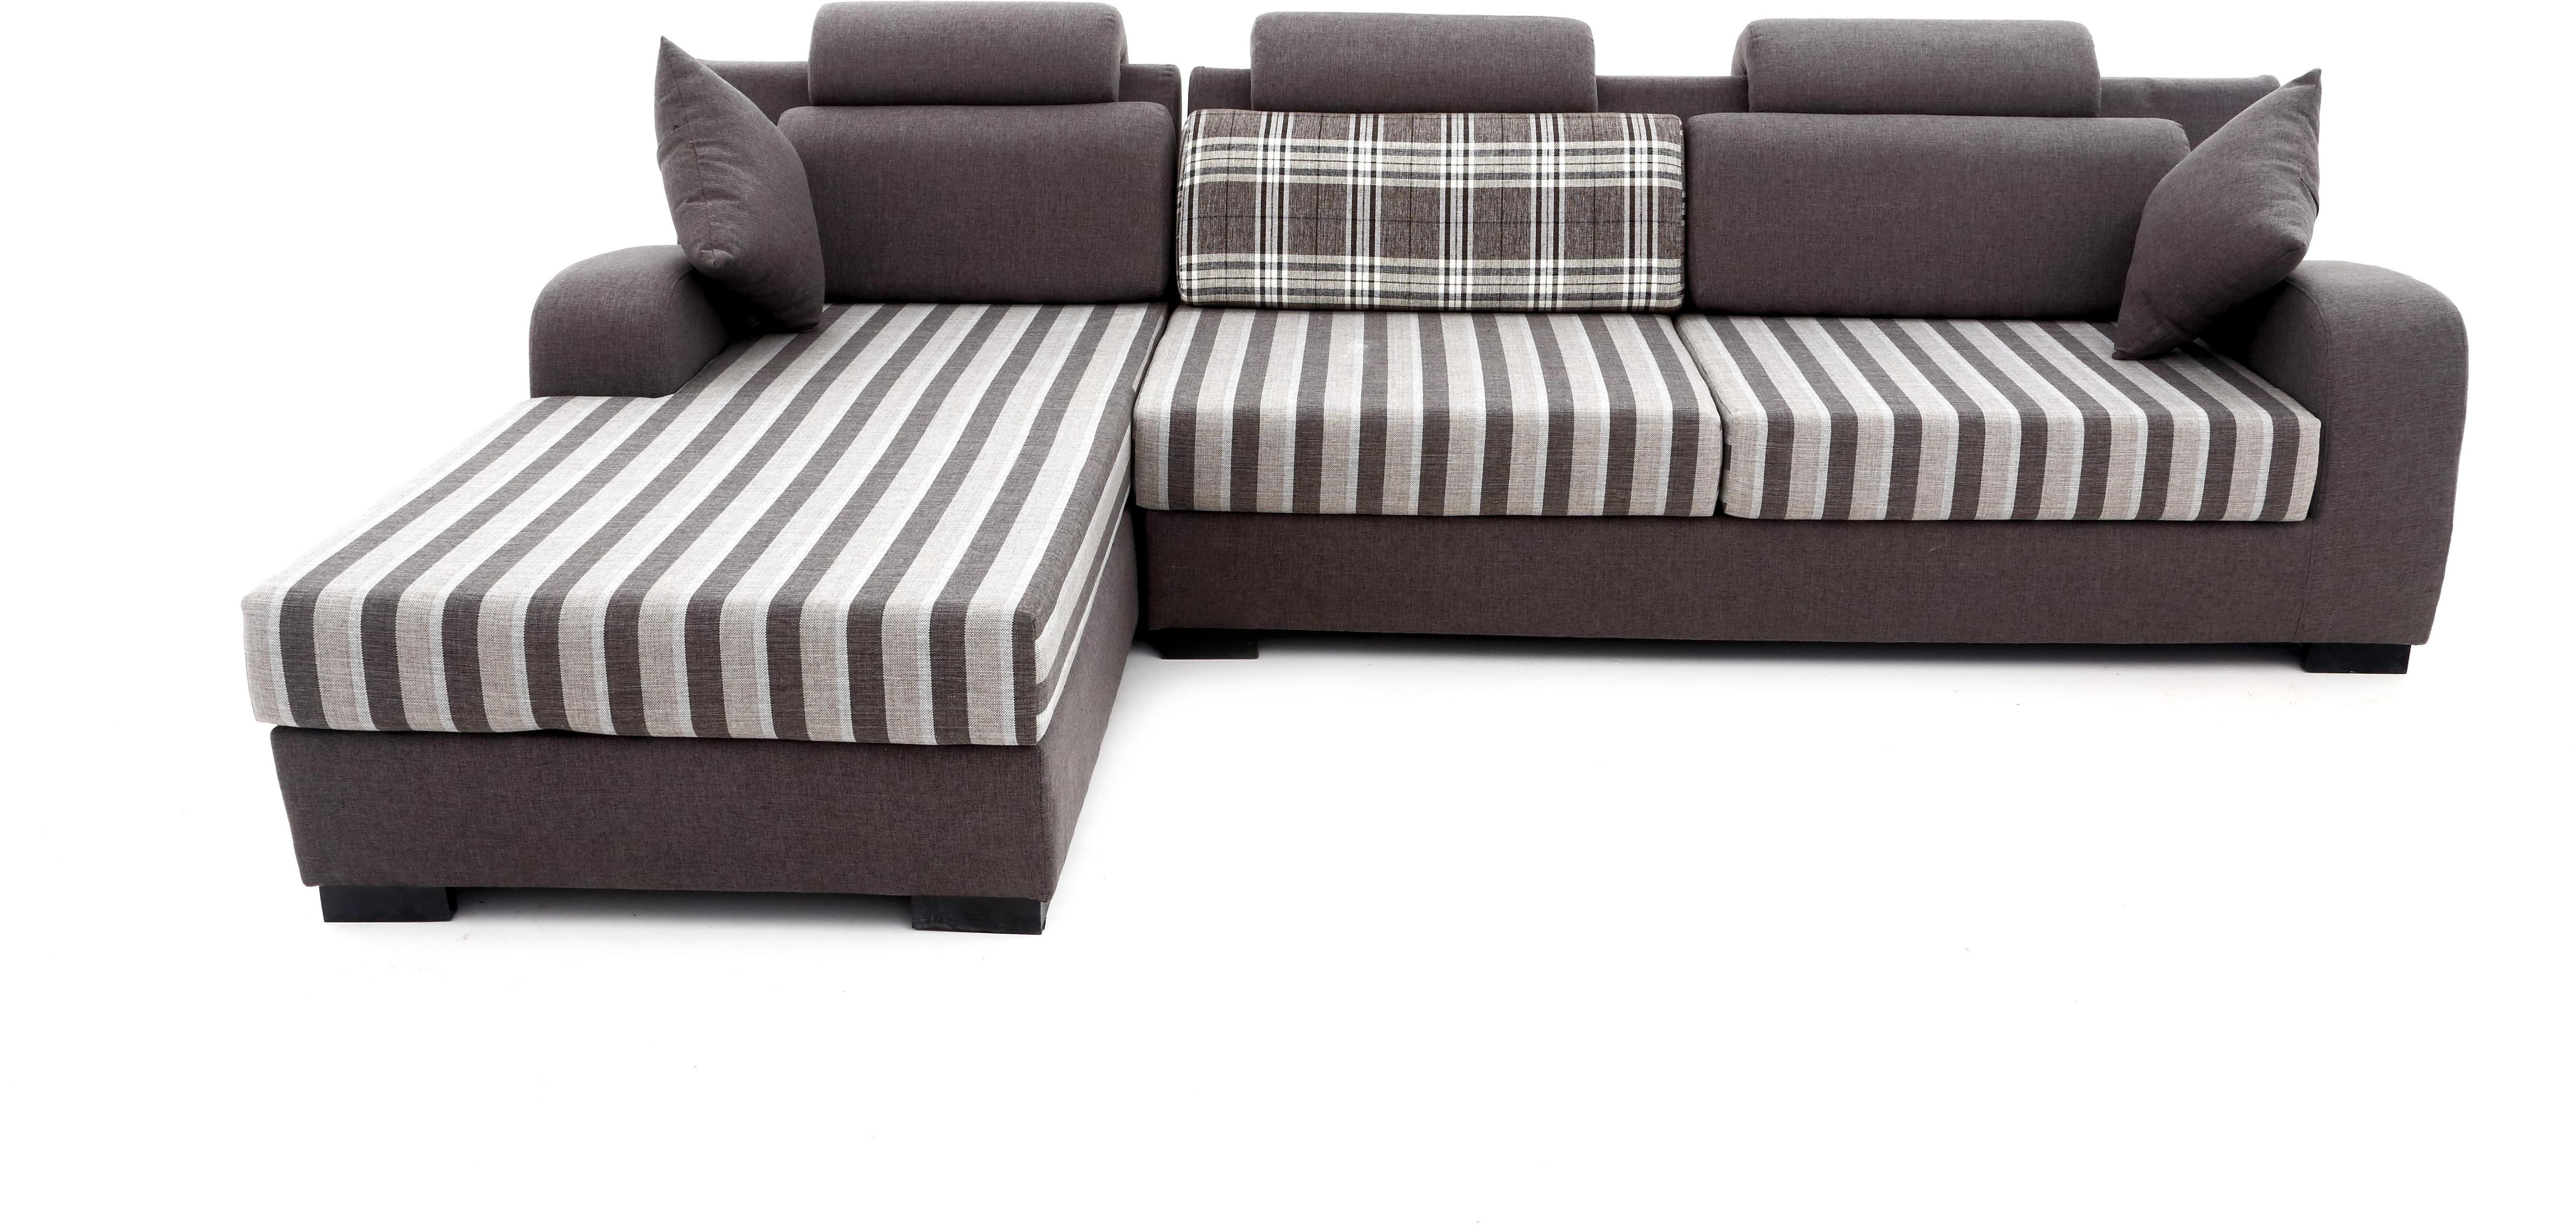 Sofa Set Offers In Mumbai Furnicity Fabric 3 1 Grey Sofa Set Configuration L Shaped